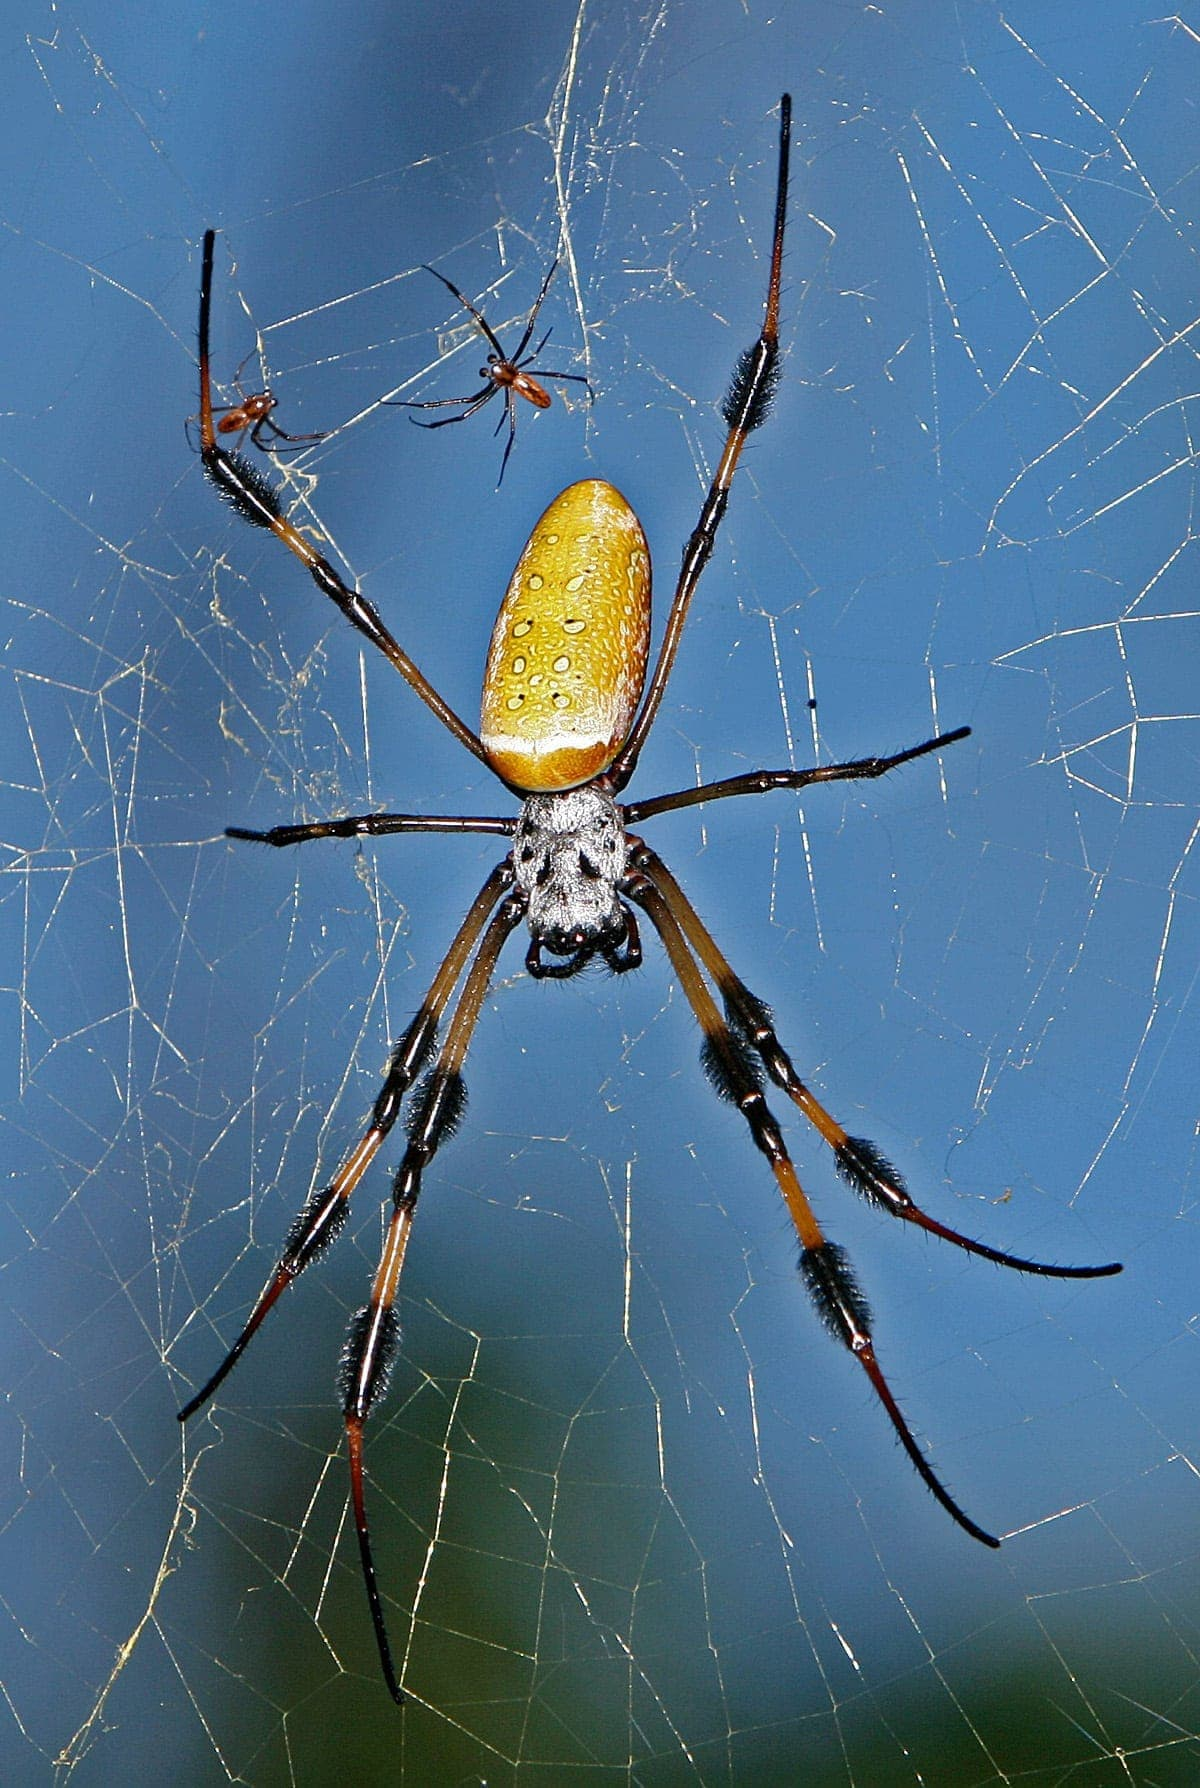 Picture of Trichonephila clavipes (Golden Silk Orb-weaver) - Male,Female - Dorsal,Webs